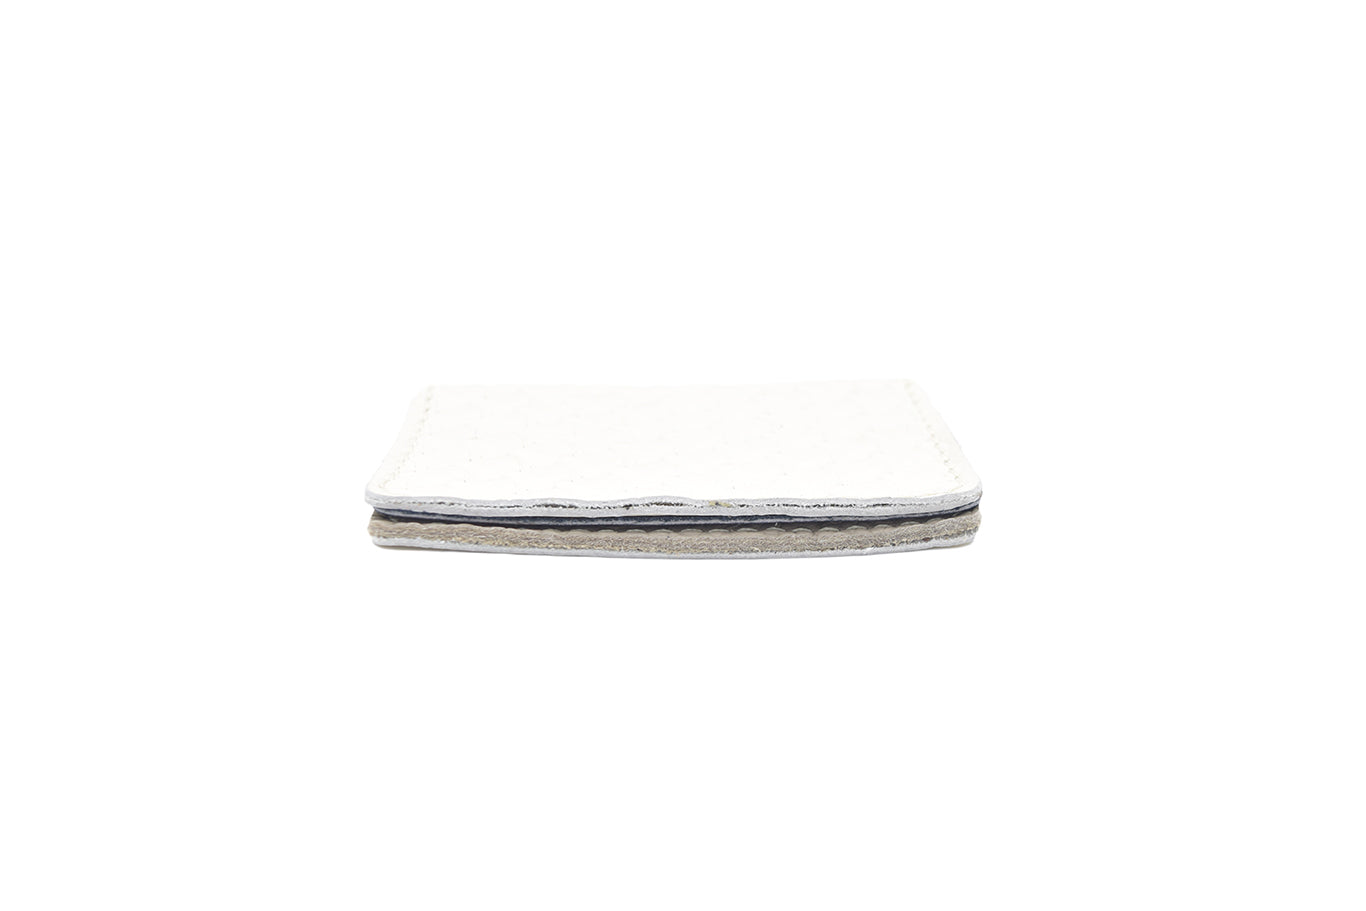 White Unisex Handmade Oyster Travel Card Holder Wallet ID in Leather, Cowhide, Nubuck and Suede